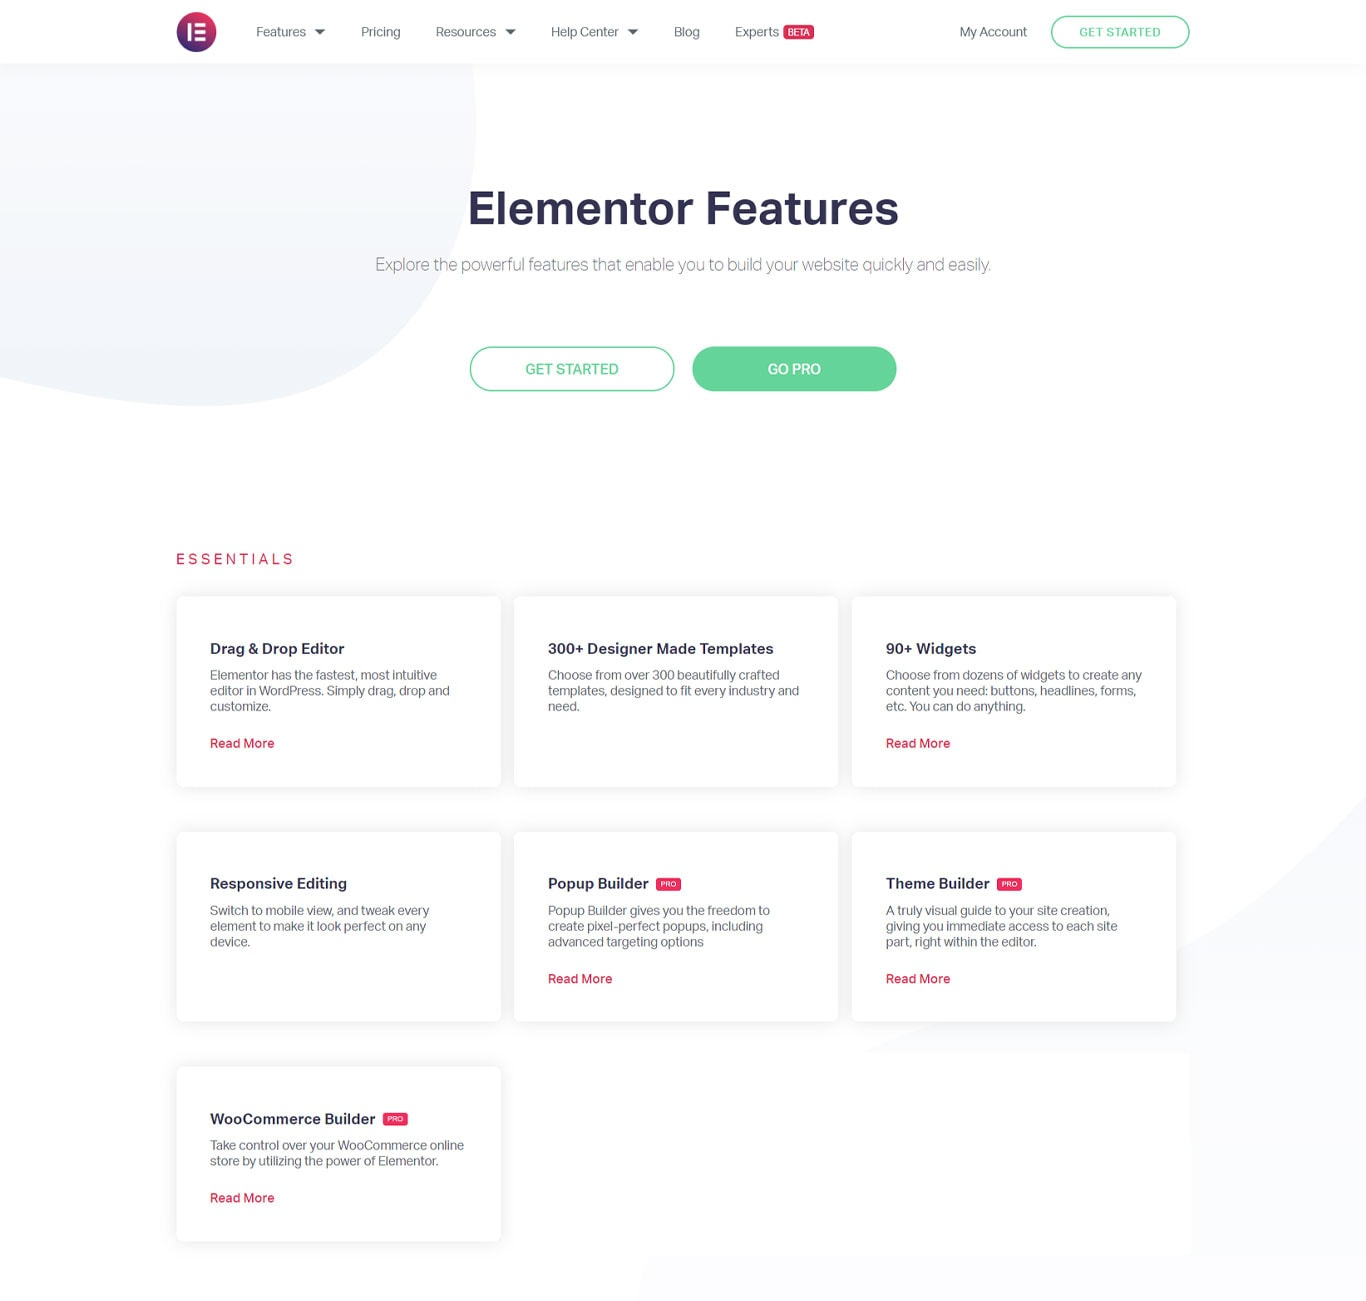 Elementor features image